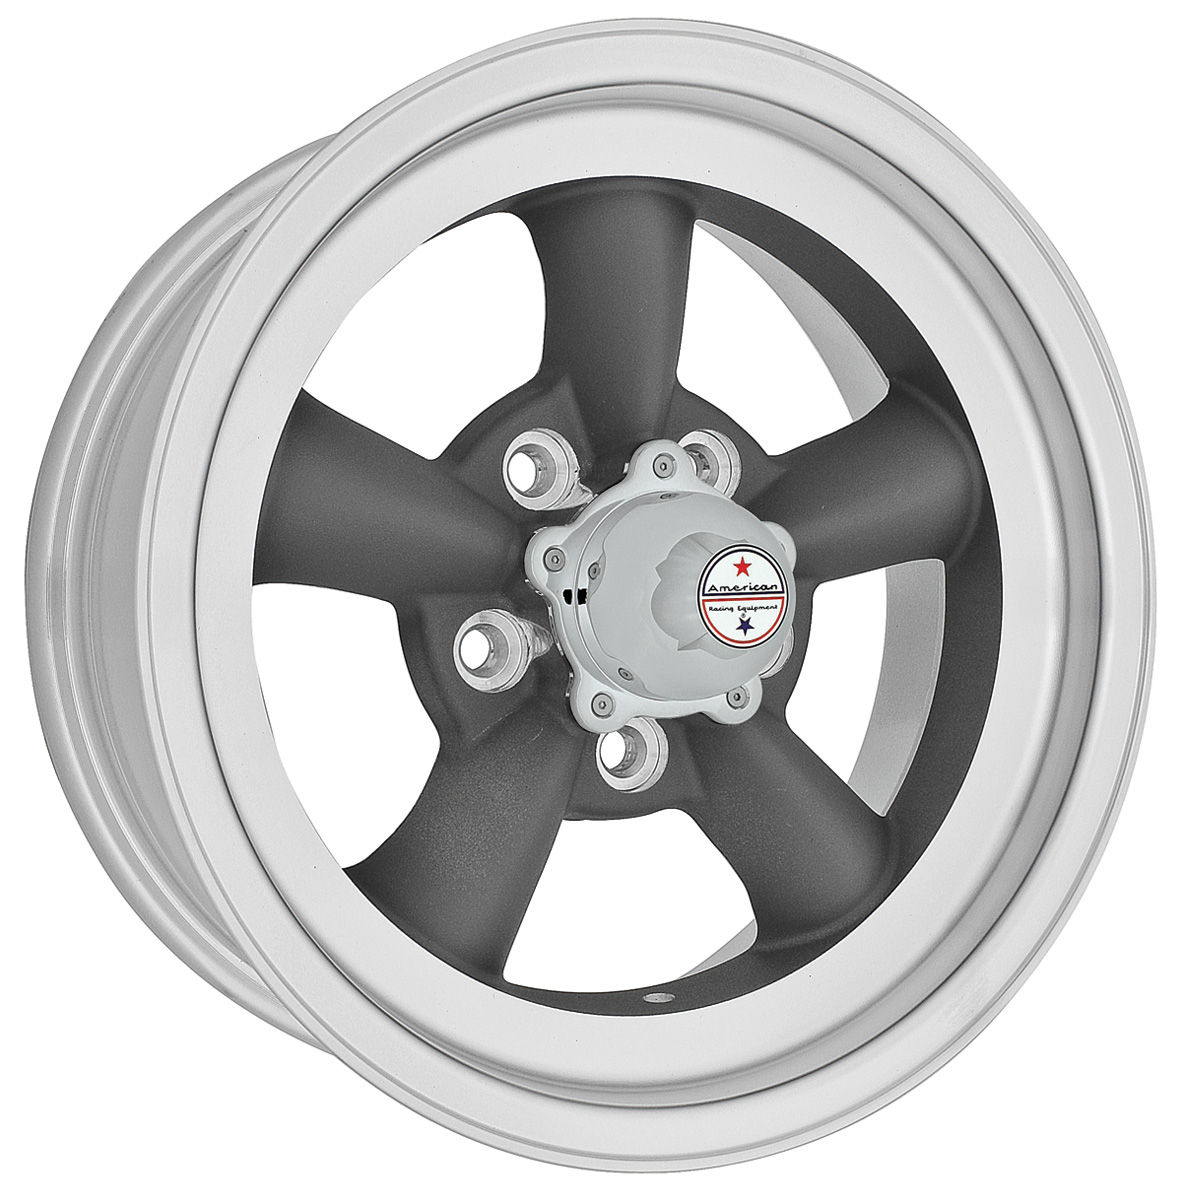 "Photo of Chevelle Wheel, Torq-Thrust D Racing 15"" x 8-1/2"" (3-3/4"" BS) -24 mm offset"